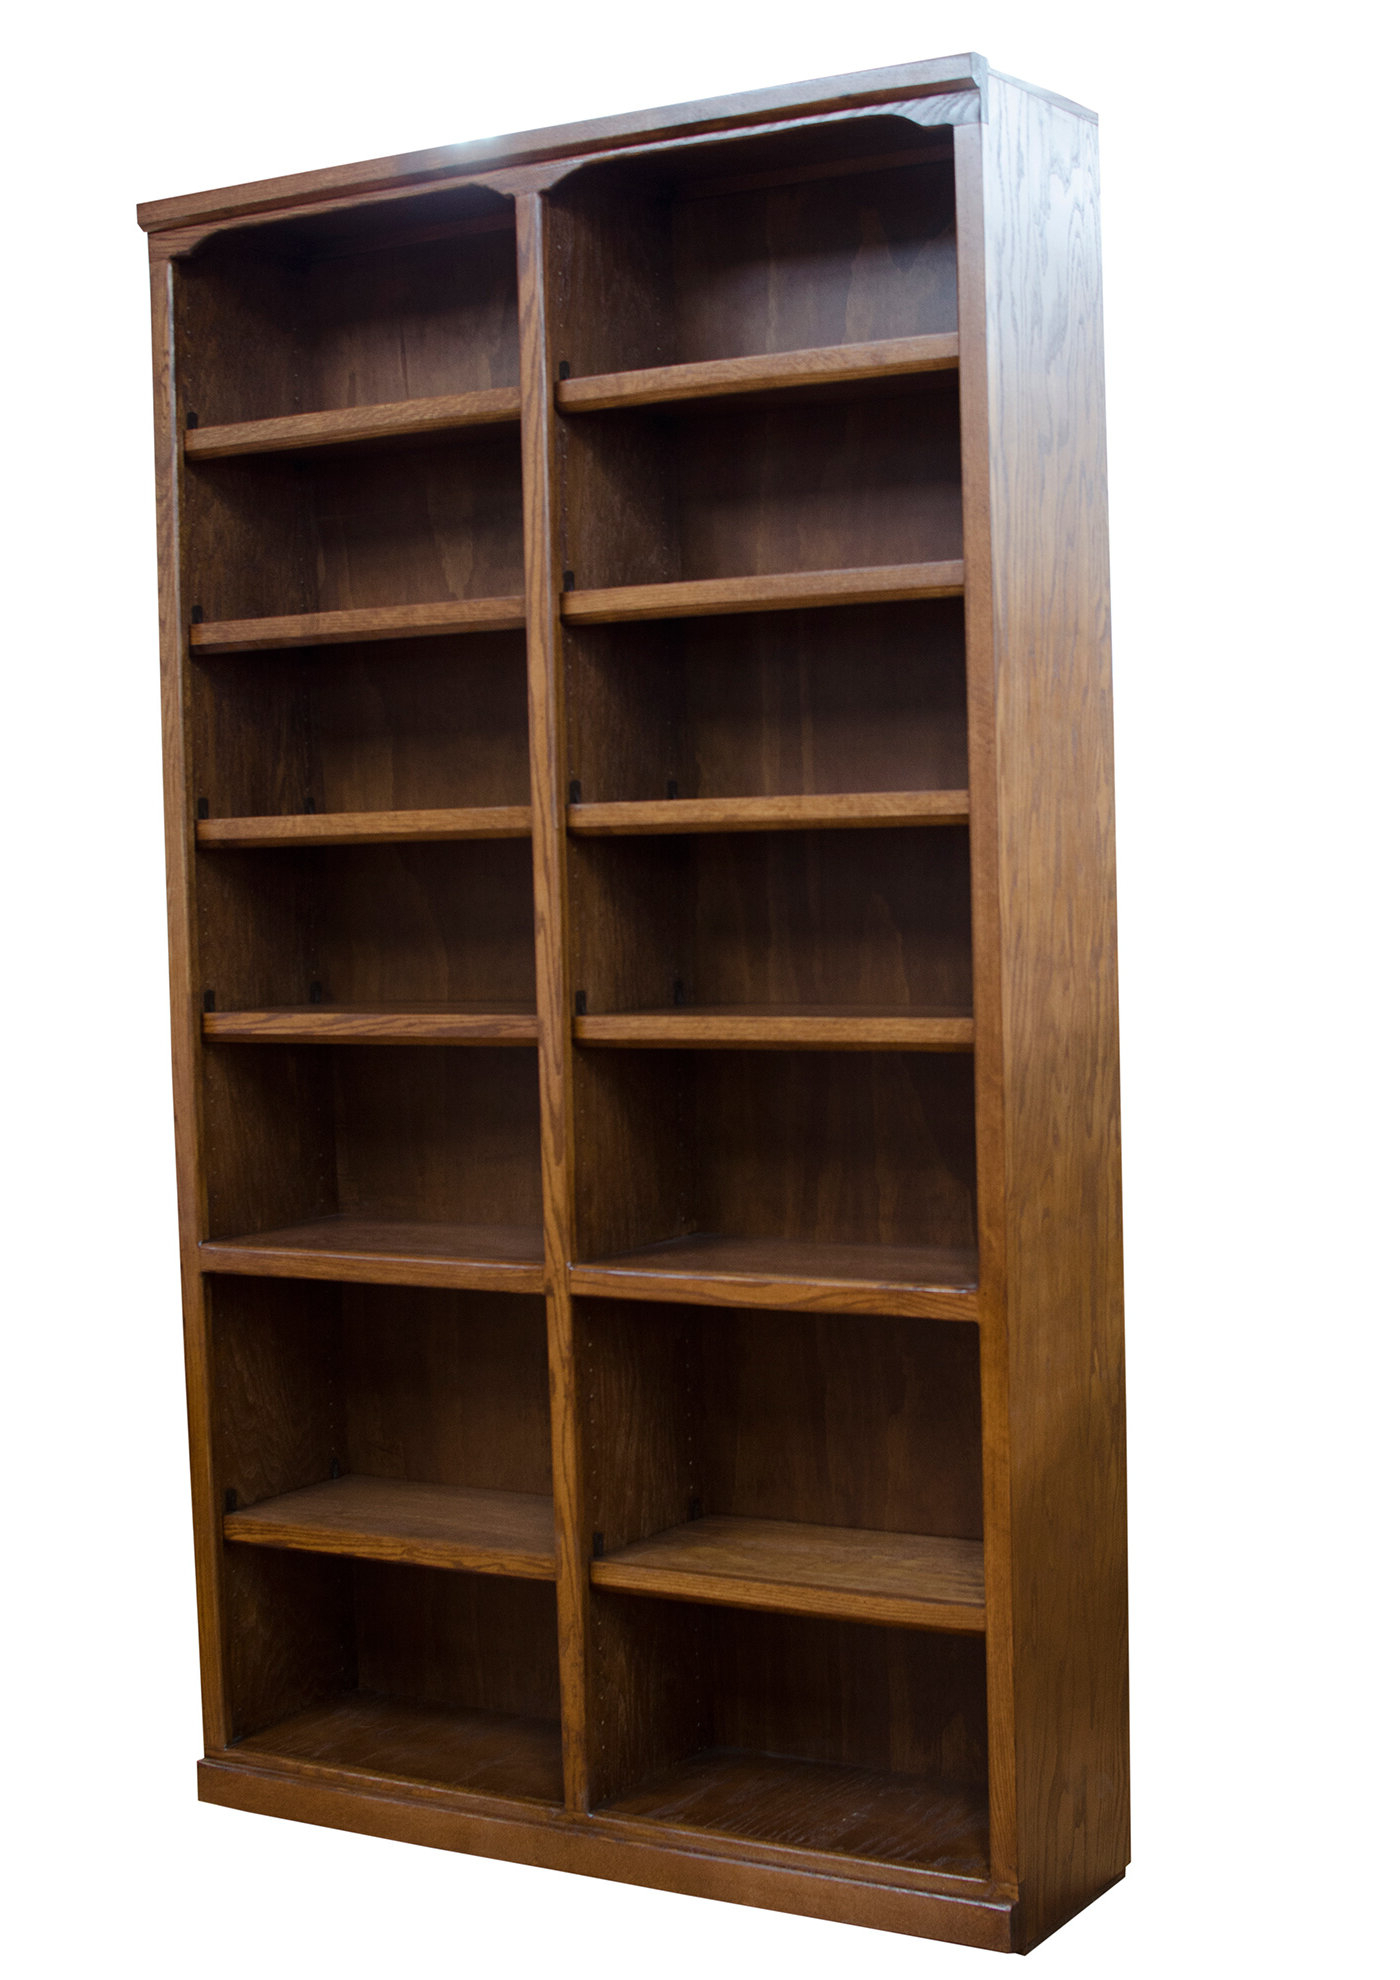 Reynoldsville Standard Bookcases Inside 2020 Mersey Traditional Standard Bookcase (View 16 of 20)